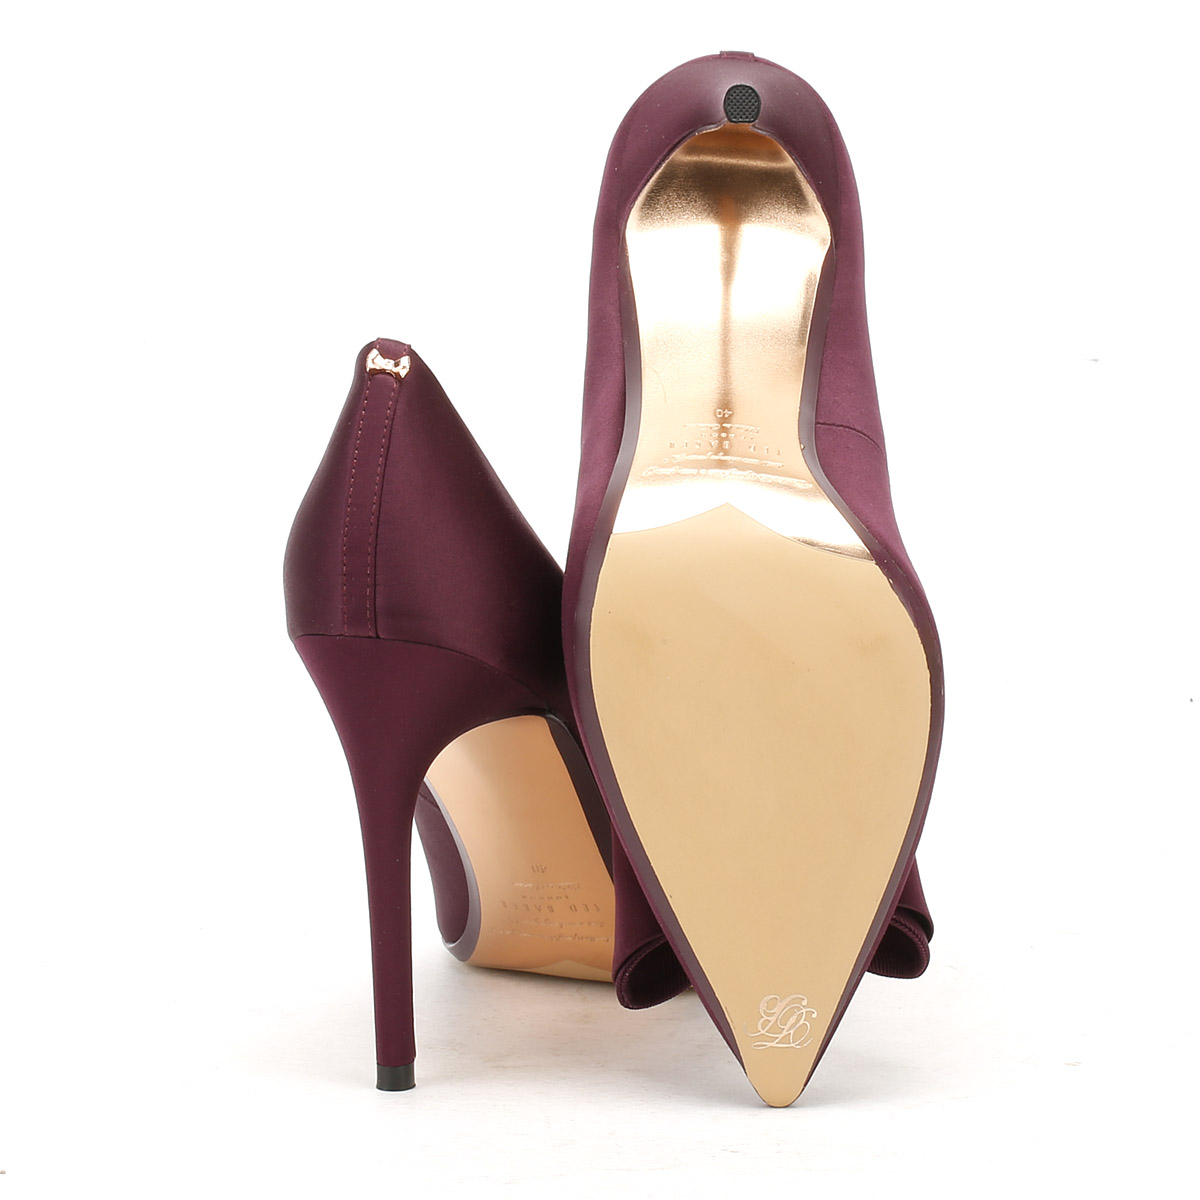 ccd9f42a532d22 Ted Baker Womens Purple Textile Azeline High Heels Stiletto Court Shoes